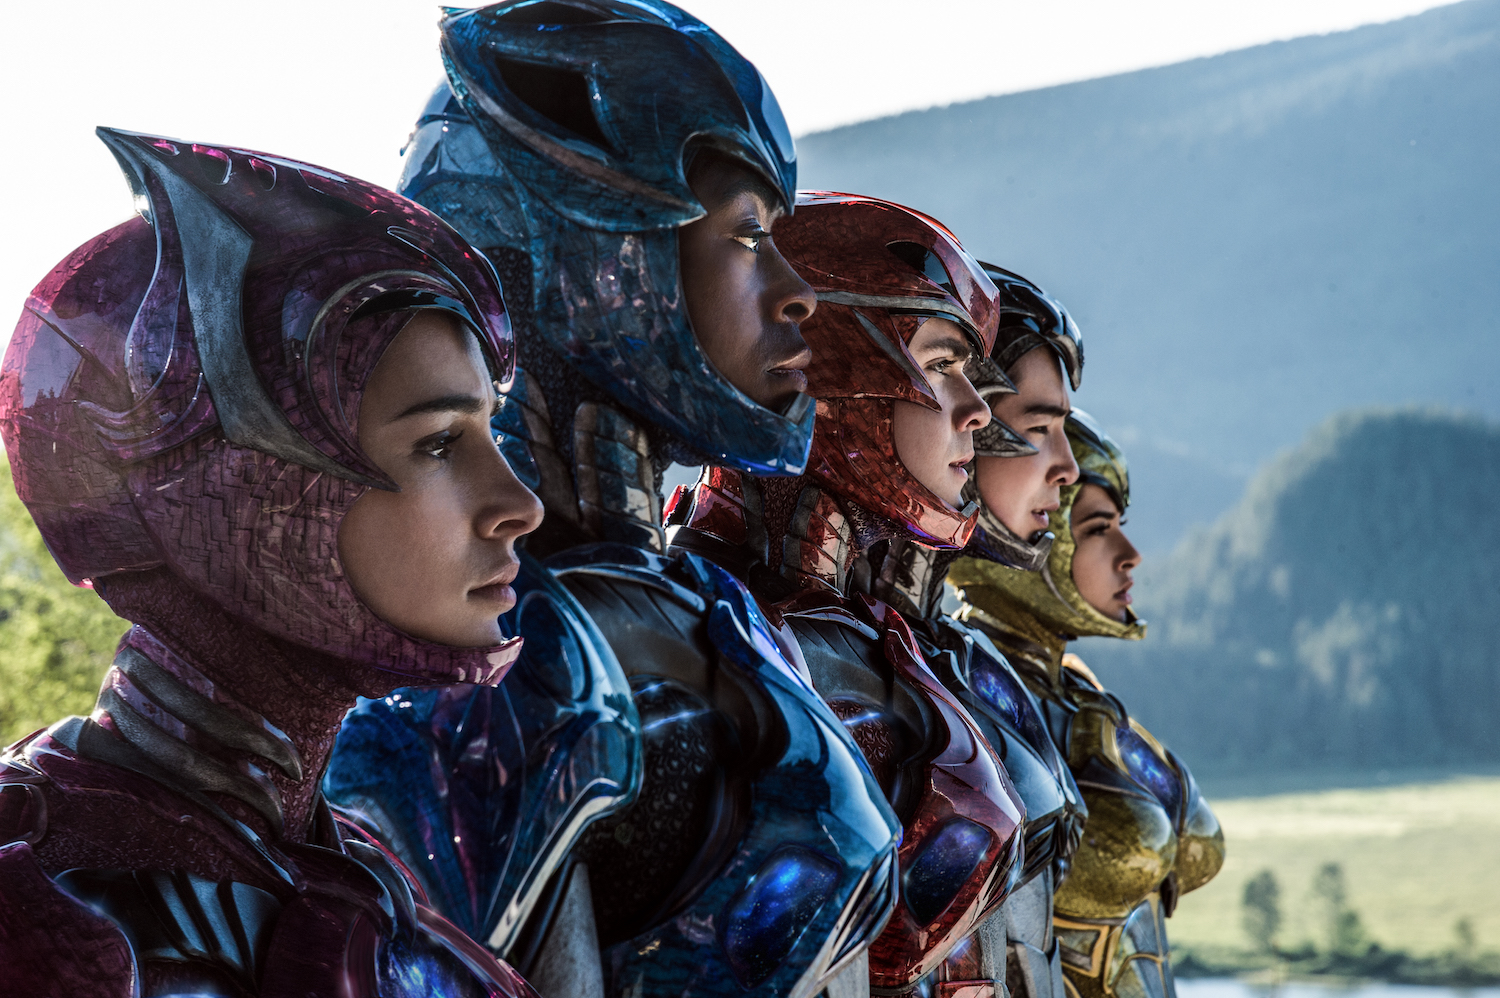 This Week In Movies: 'Power Rangers,' 'Life,' 'CHiPs,' 'Wilson'